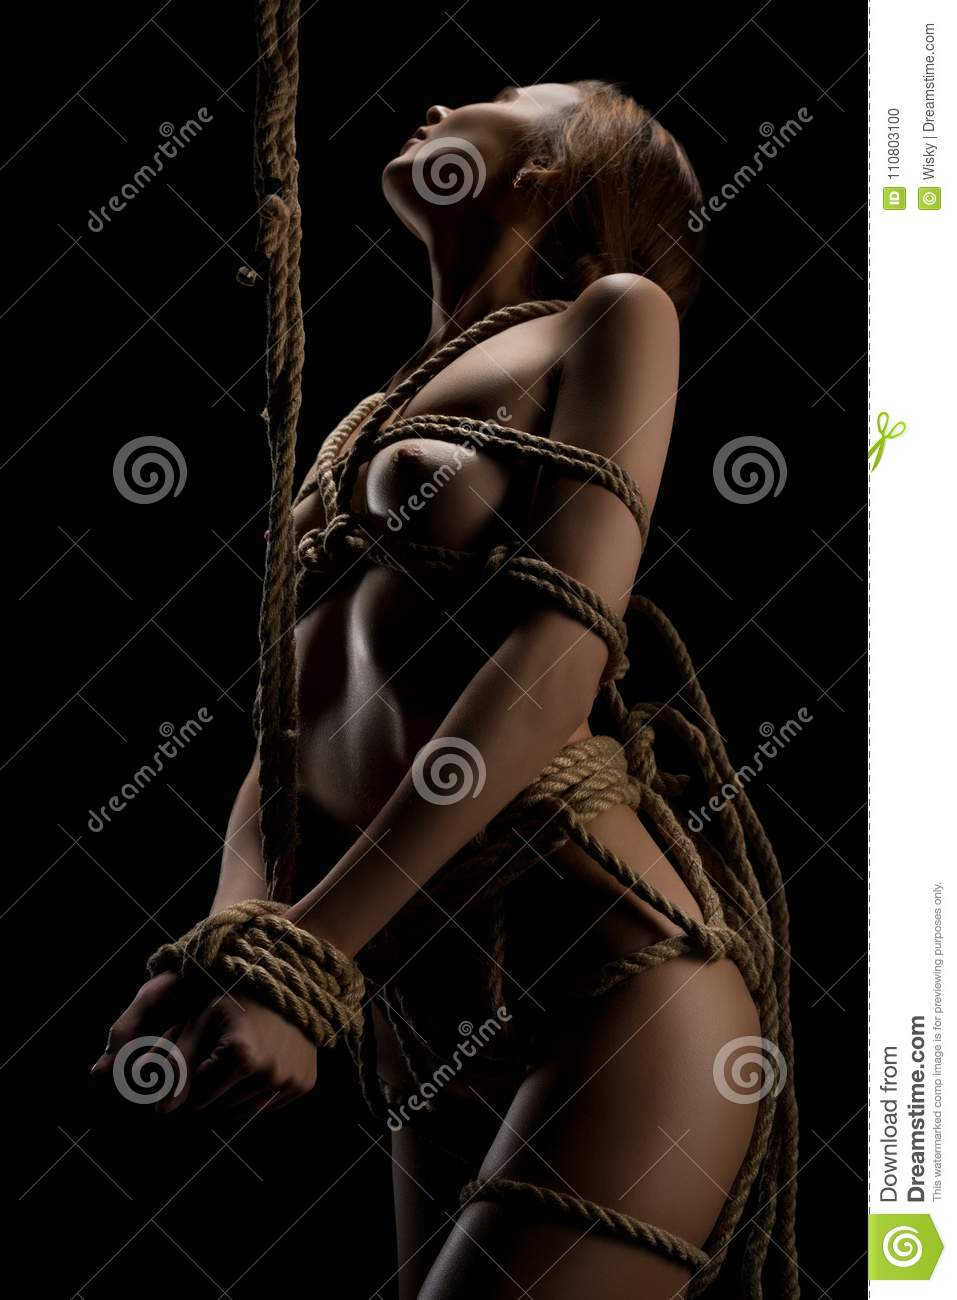 Woman tied up naked